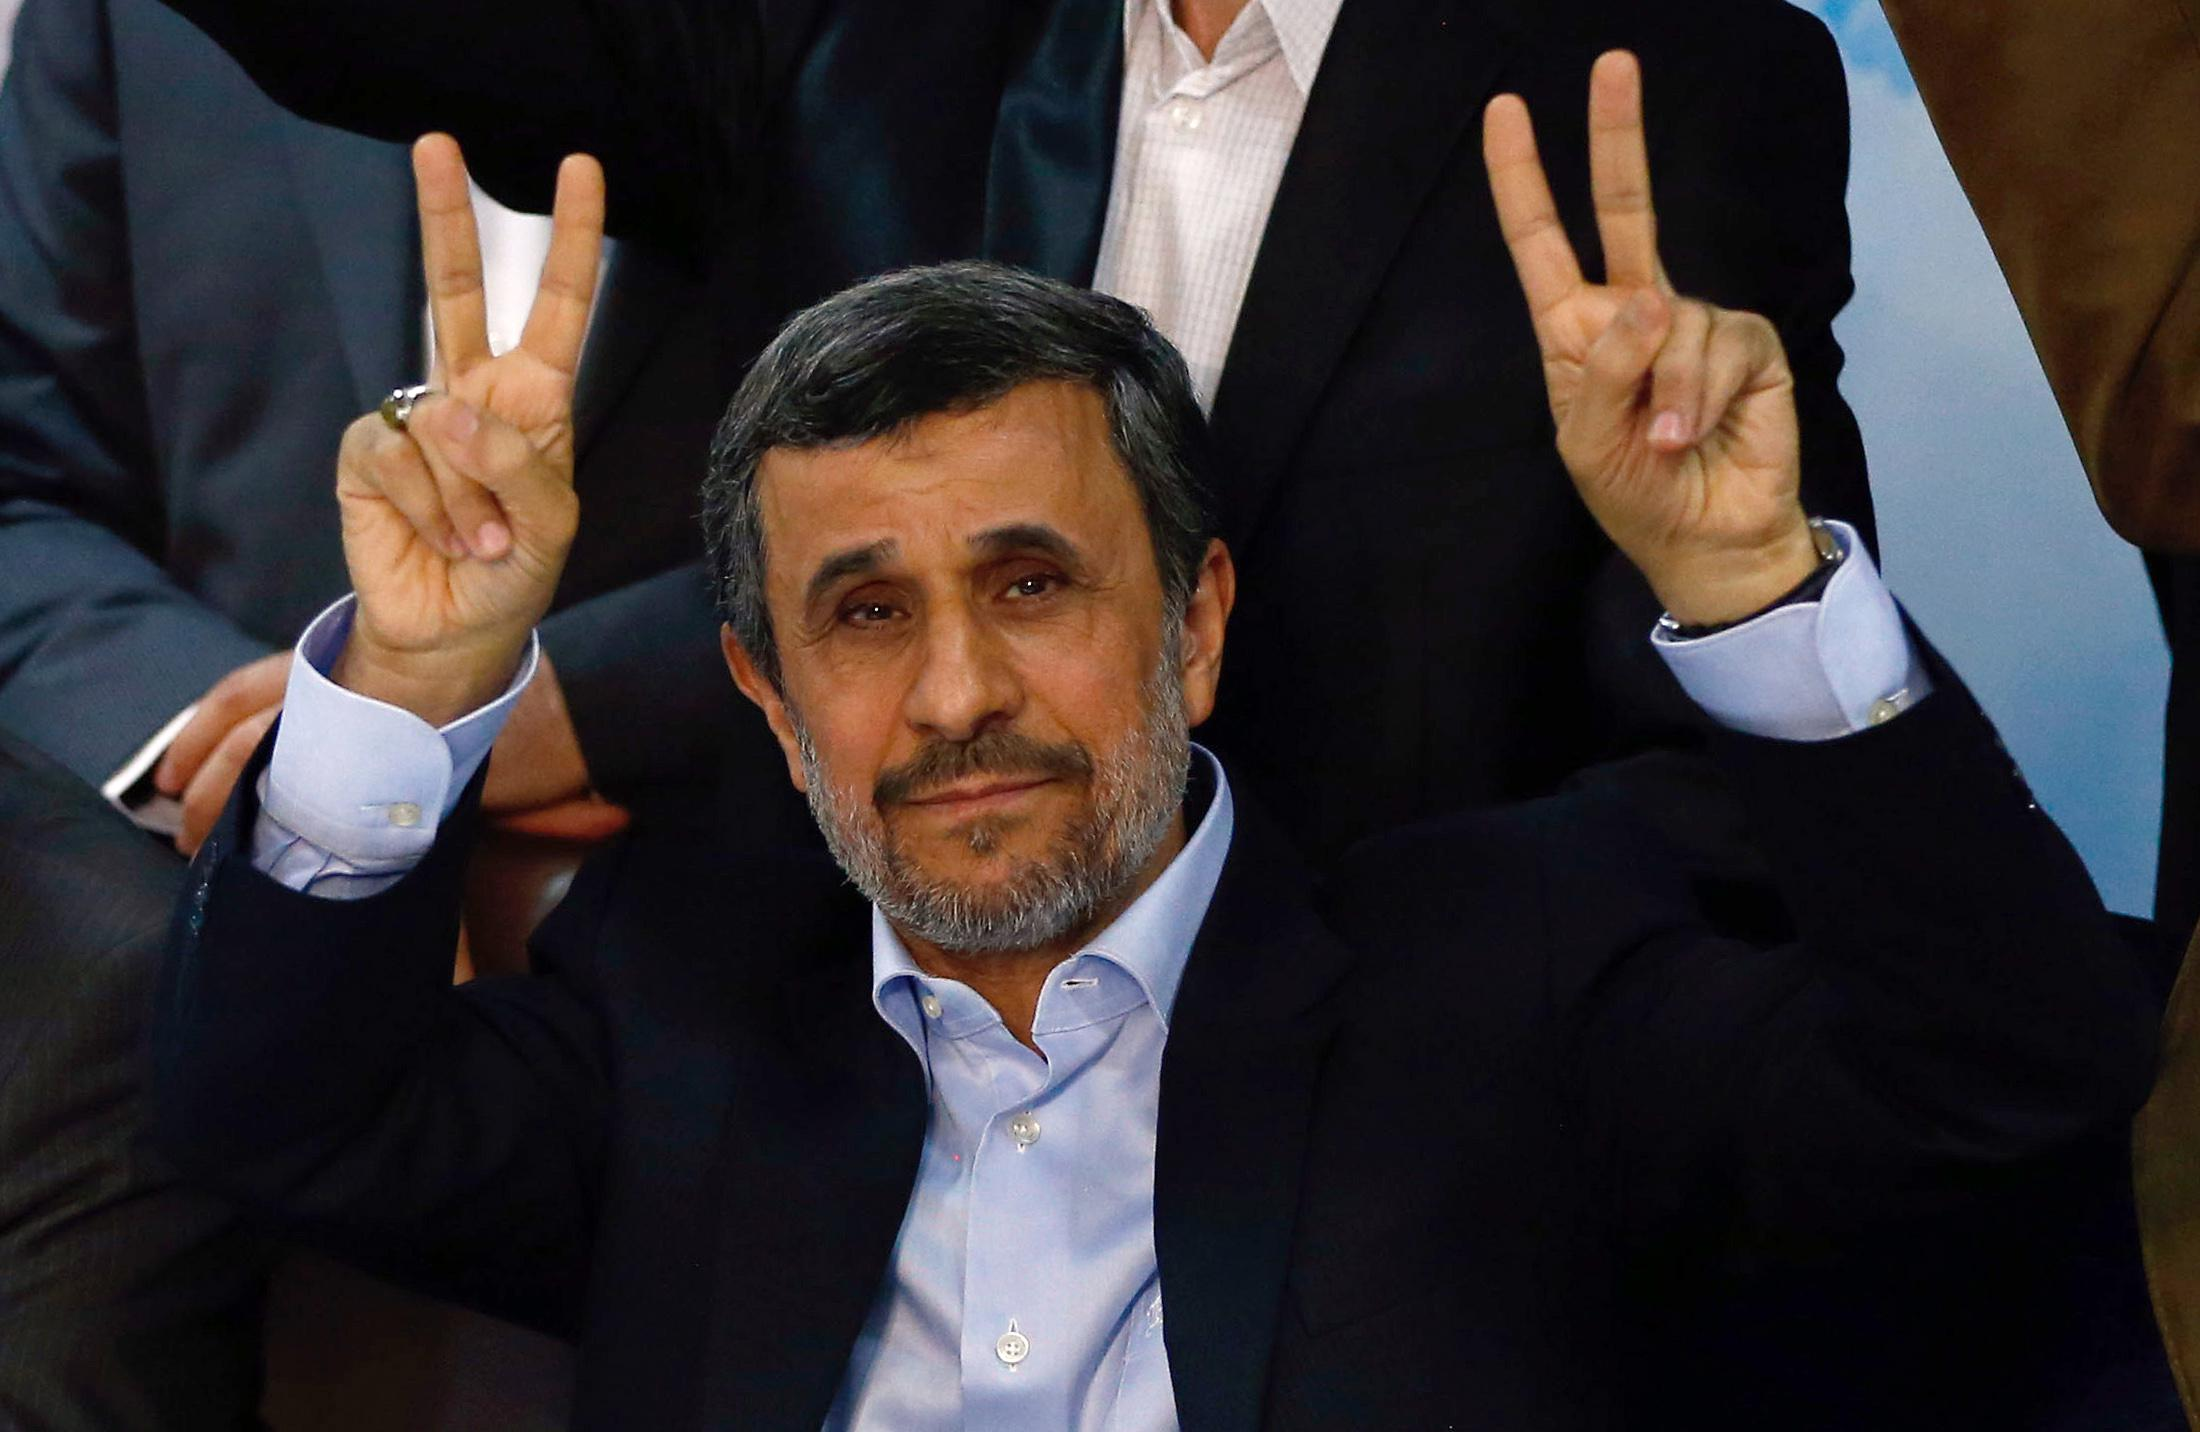 Former Iranian president Mahmoud Ahmadinejad (C) flashes the sign for victory at the Interior Ministry's election headquarters as candidates begin to sign up for the upcoming presidential elections in Tehran on April 12, 2017.Ahmadinejad had previously said he would not stand after being advised not to by supreme leader Ayatollah Ali Khamenei, saying he would instead support his former deputy Hamid Baghaie who also registered on Wednesday.